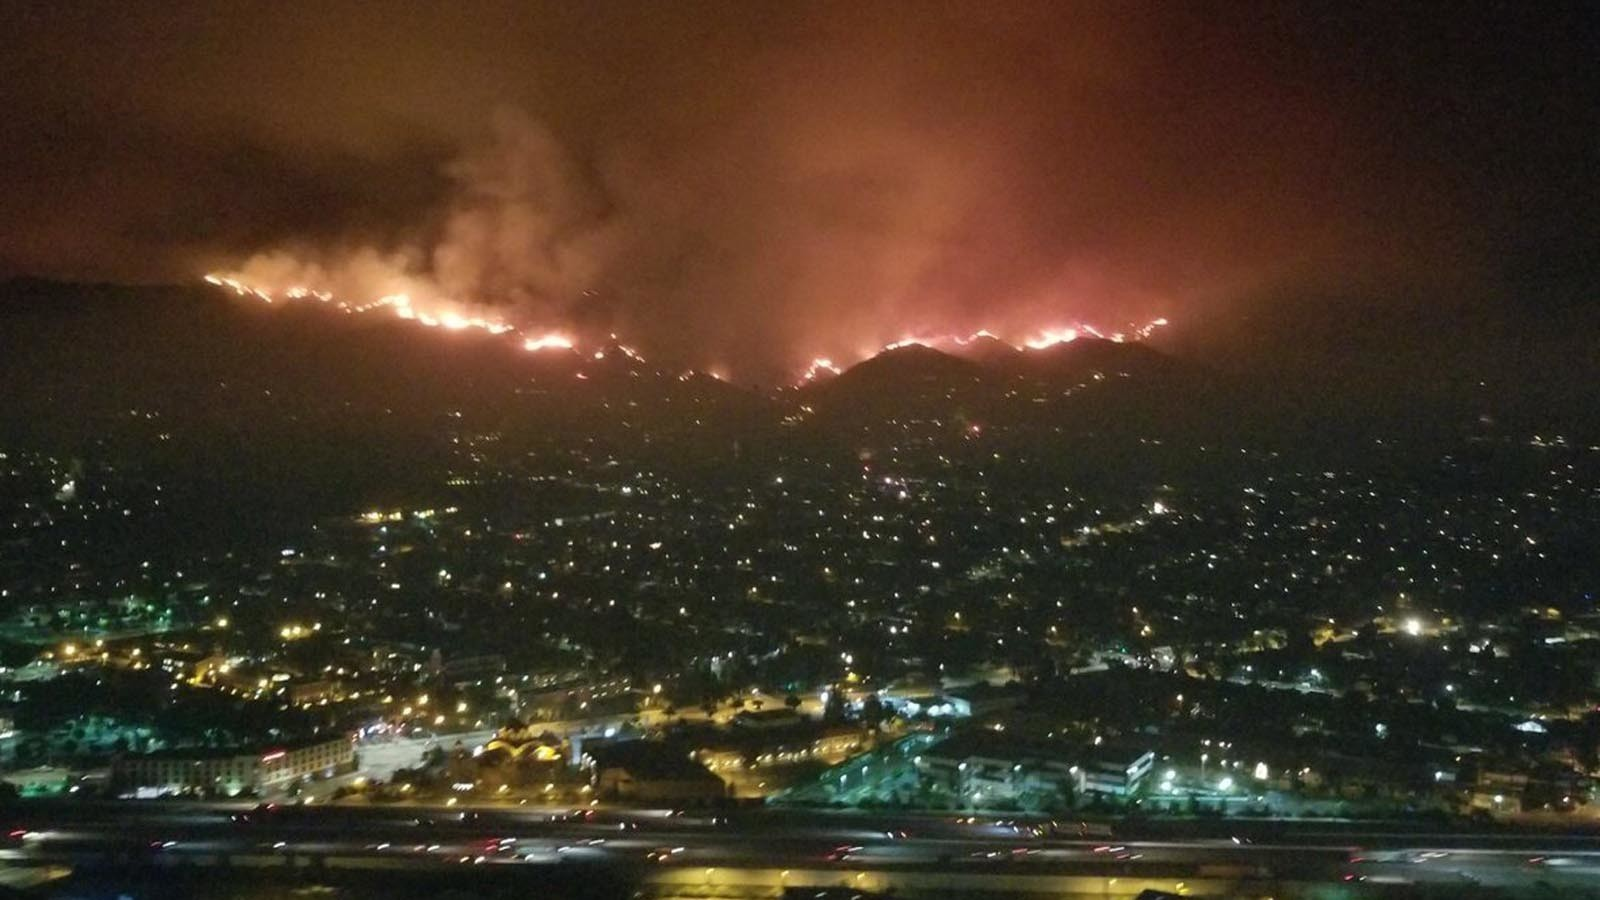 Evacuations Ordered As Brush Fire Sweeps Across Verdugo Mountains Near Sun Valley 210 Freeway Closed